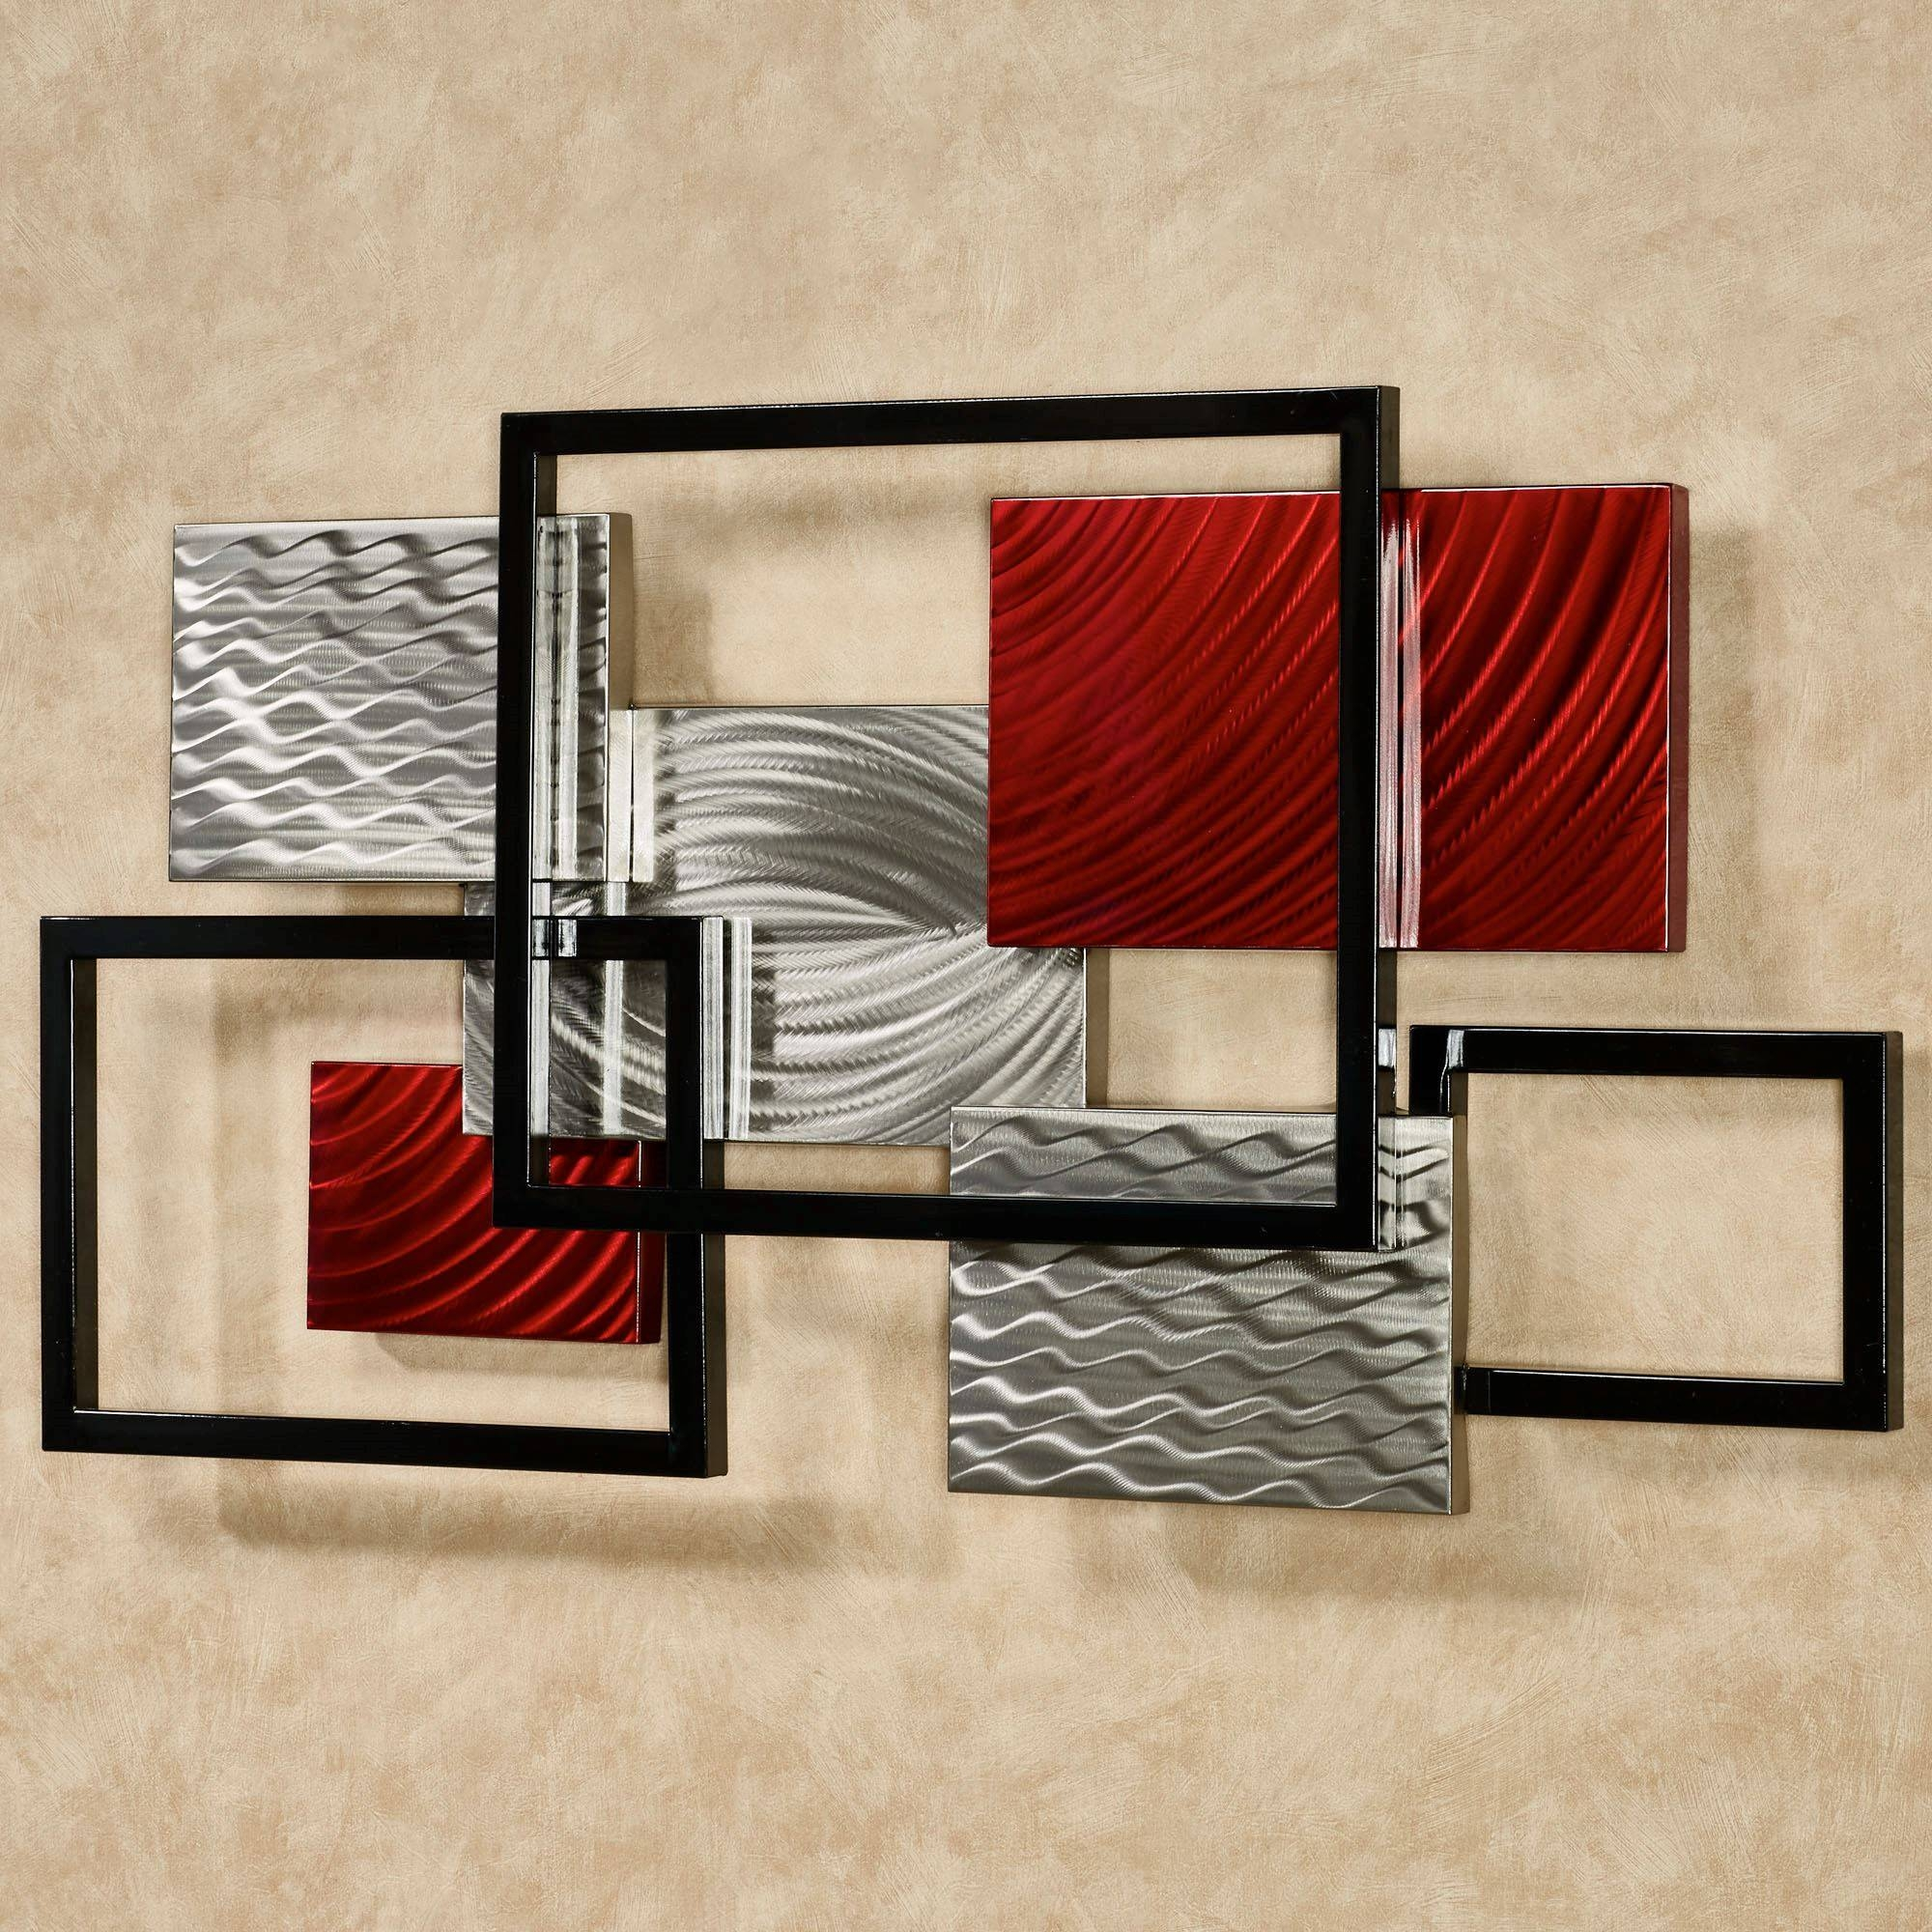 Metal Wall Art Sculptures | Touch Of Class Inside Most Recently Released 3d Metal Wall Art Sculptures (View 5 of 20)